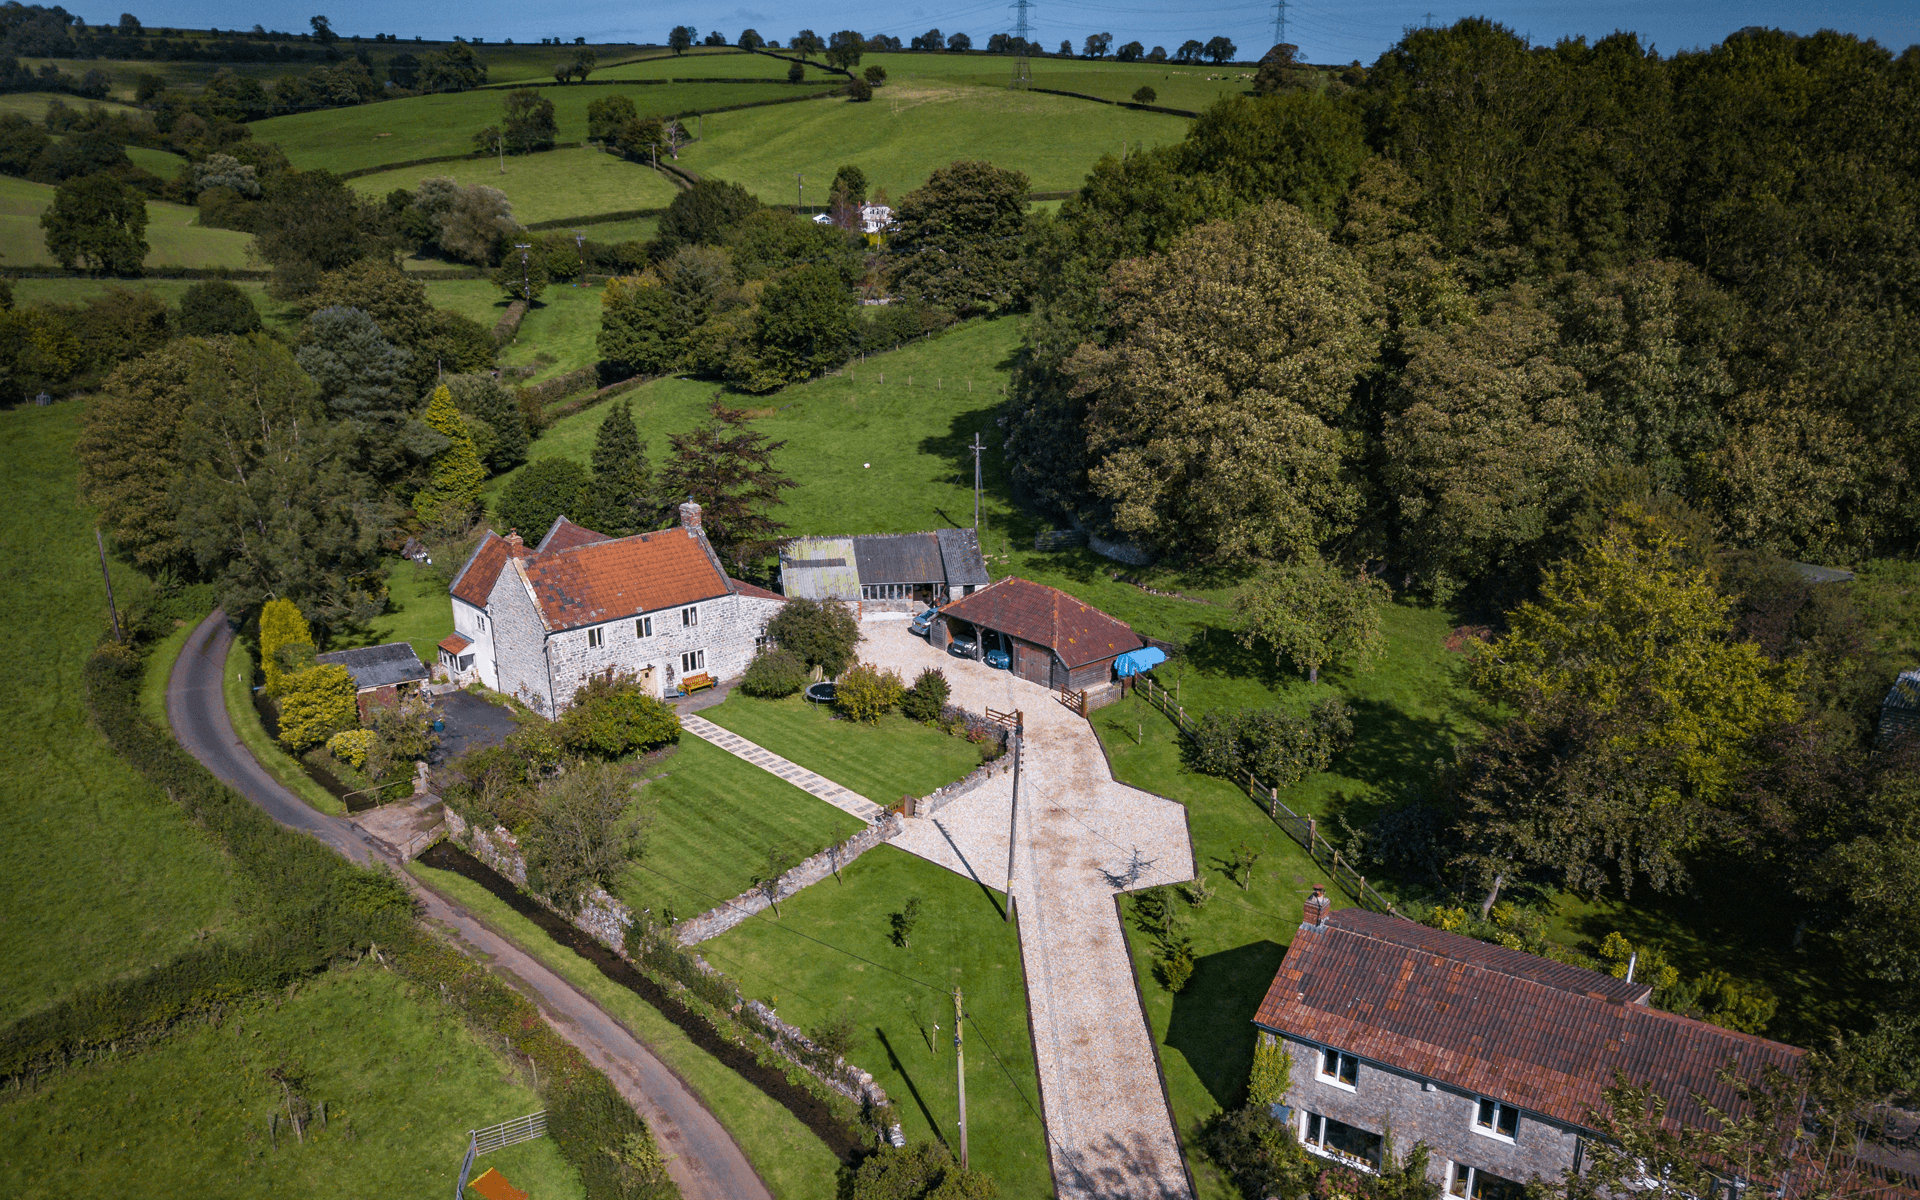 """Mavic Pro"" aerial drone photo of house in Prestleigh, Shepton Mallet for estate agency"